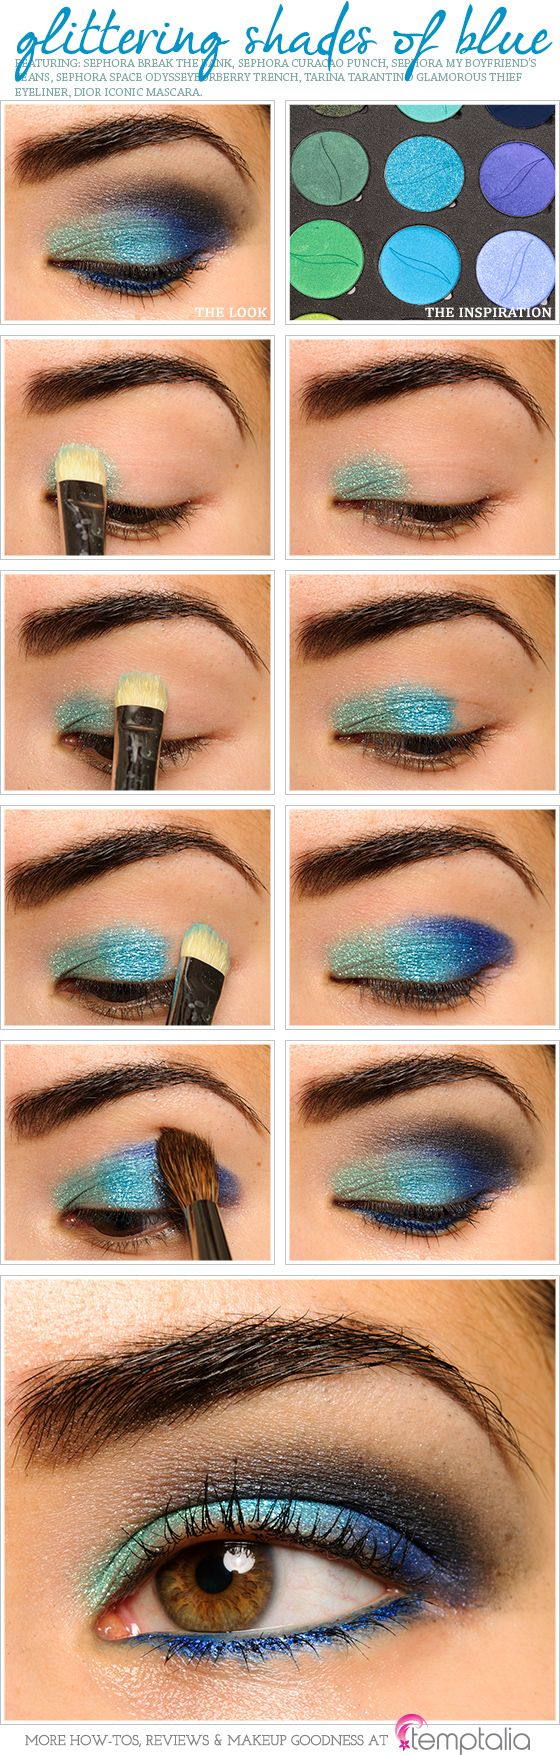 I love this look! --  I can help you get this look with Mary Kay colors! Contact me if you want to try it! www.marykay.com/sherri_koster